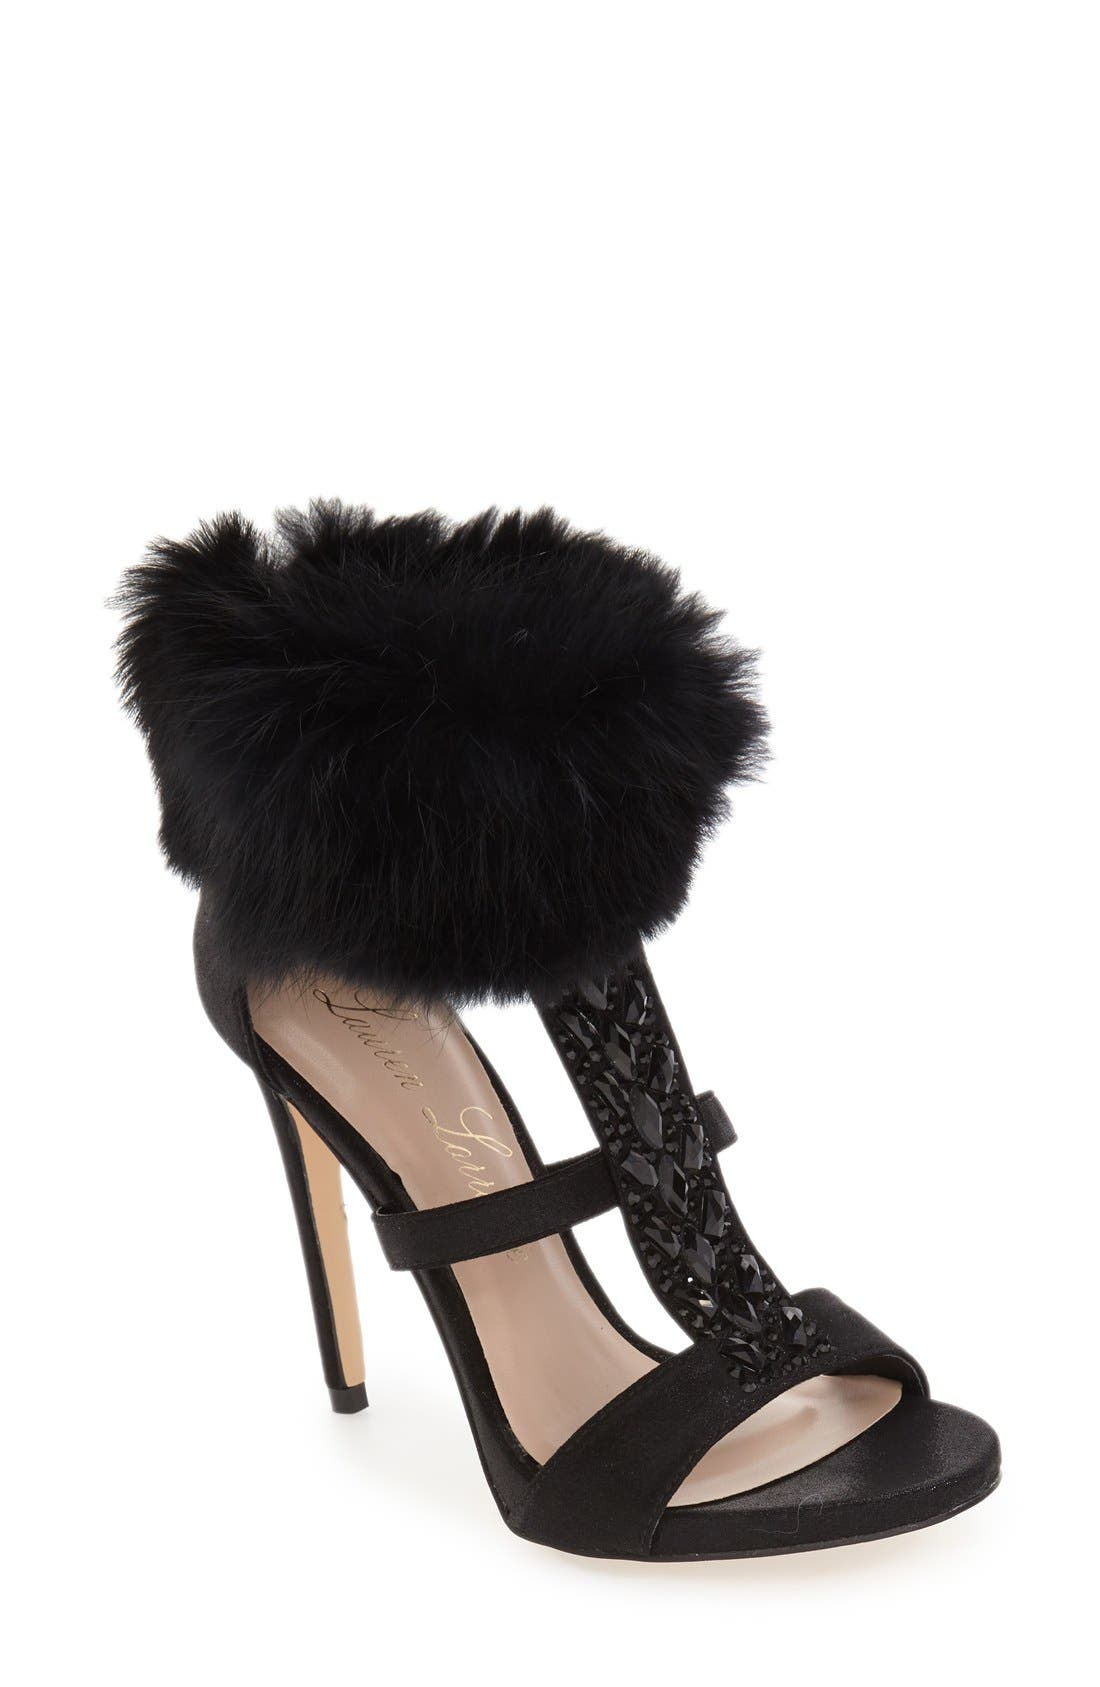 Lauren Lorraine 'Angela' Genuine Rabbit Fur Cuff Sandal (Women)